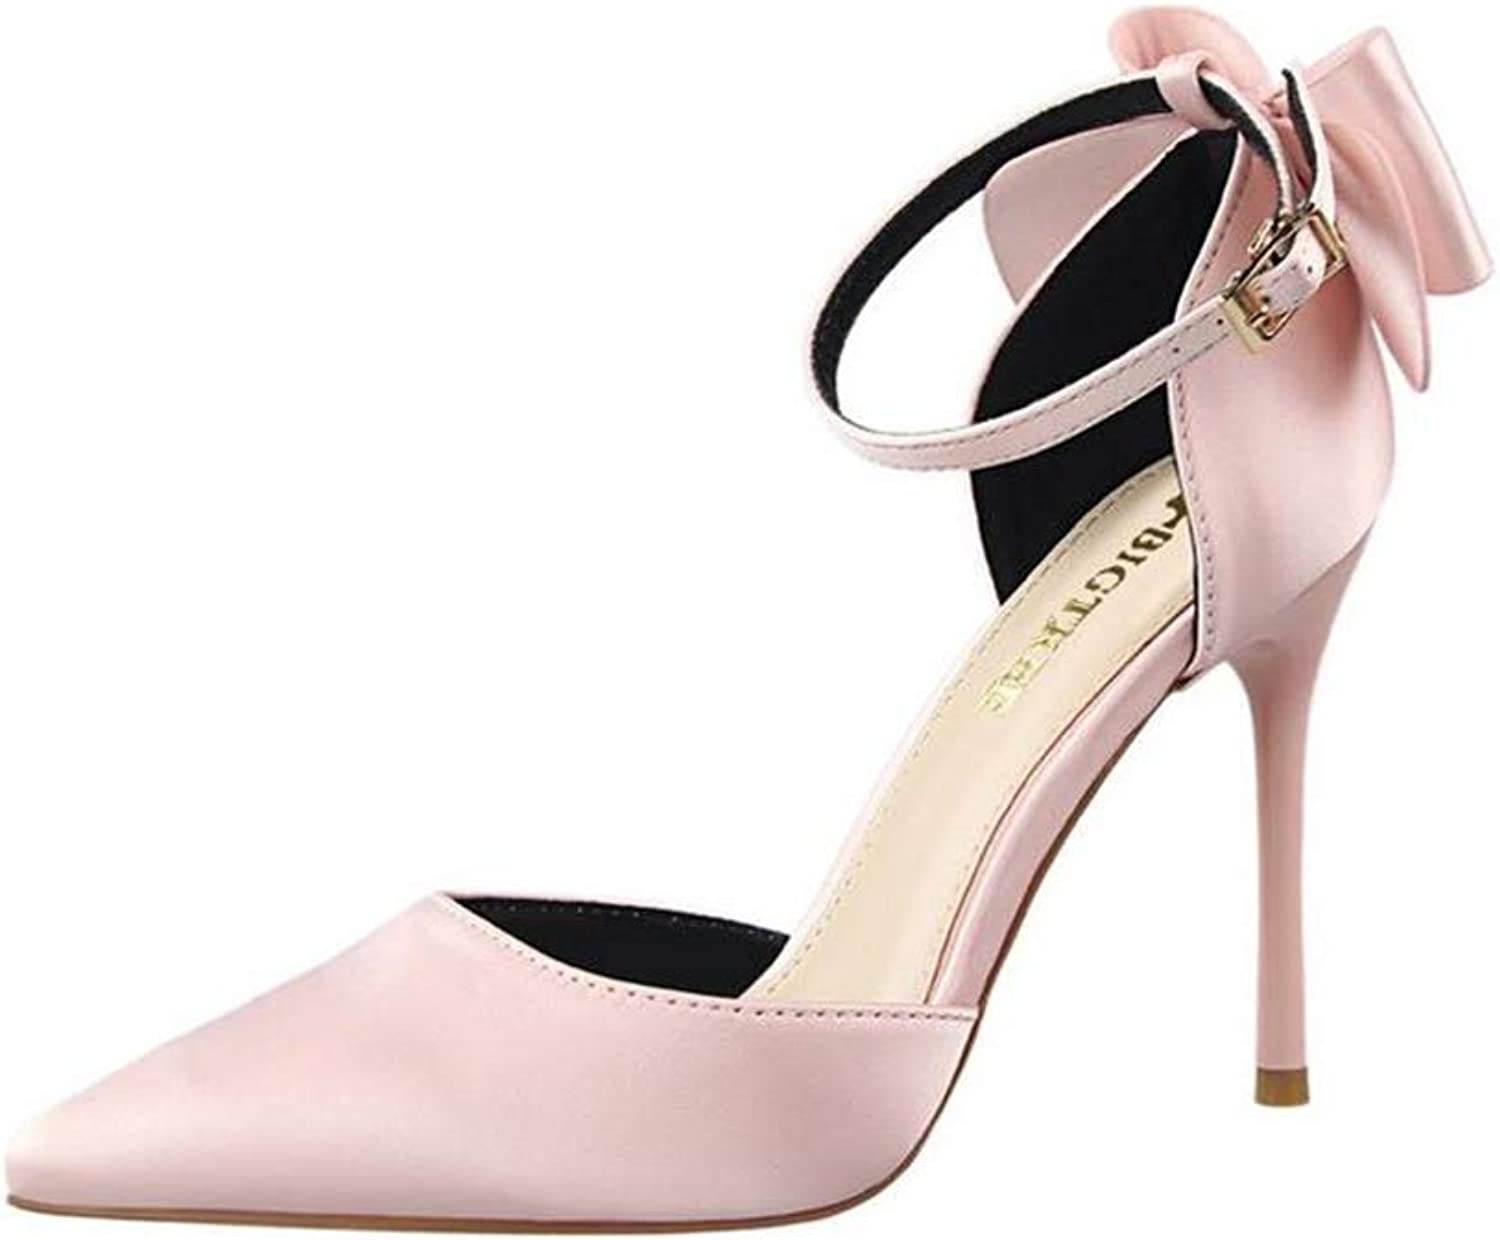 CHENGLing Women High Heel Strappy Dress Pumps Pointy Toe Satin Wedding Party shoes